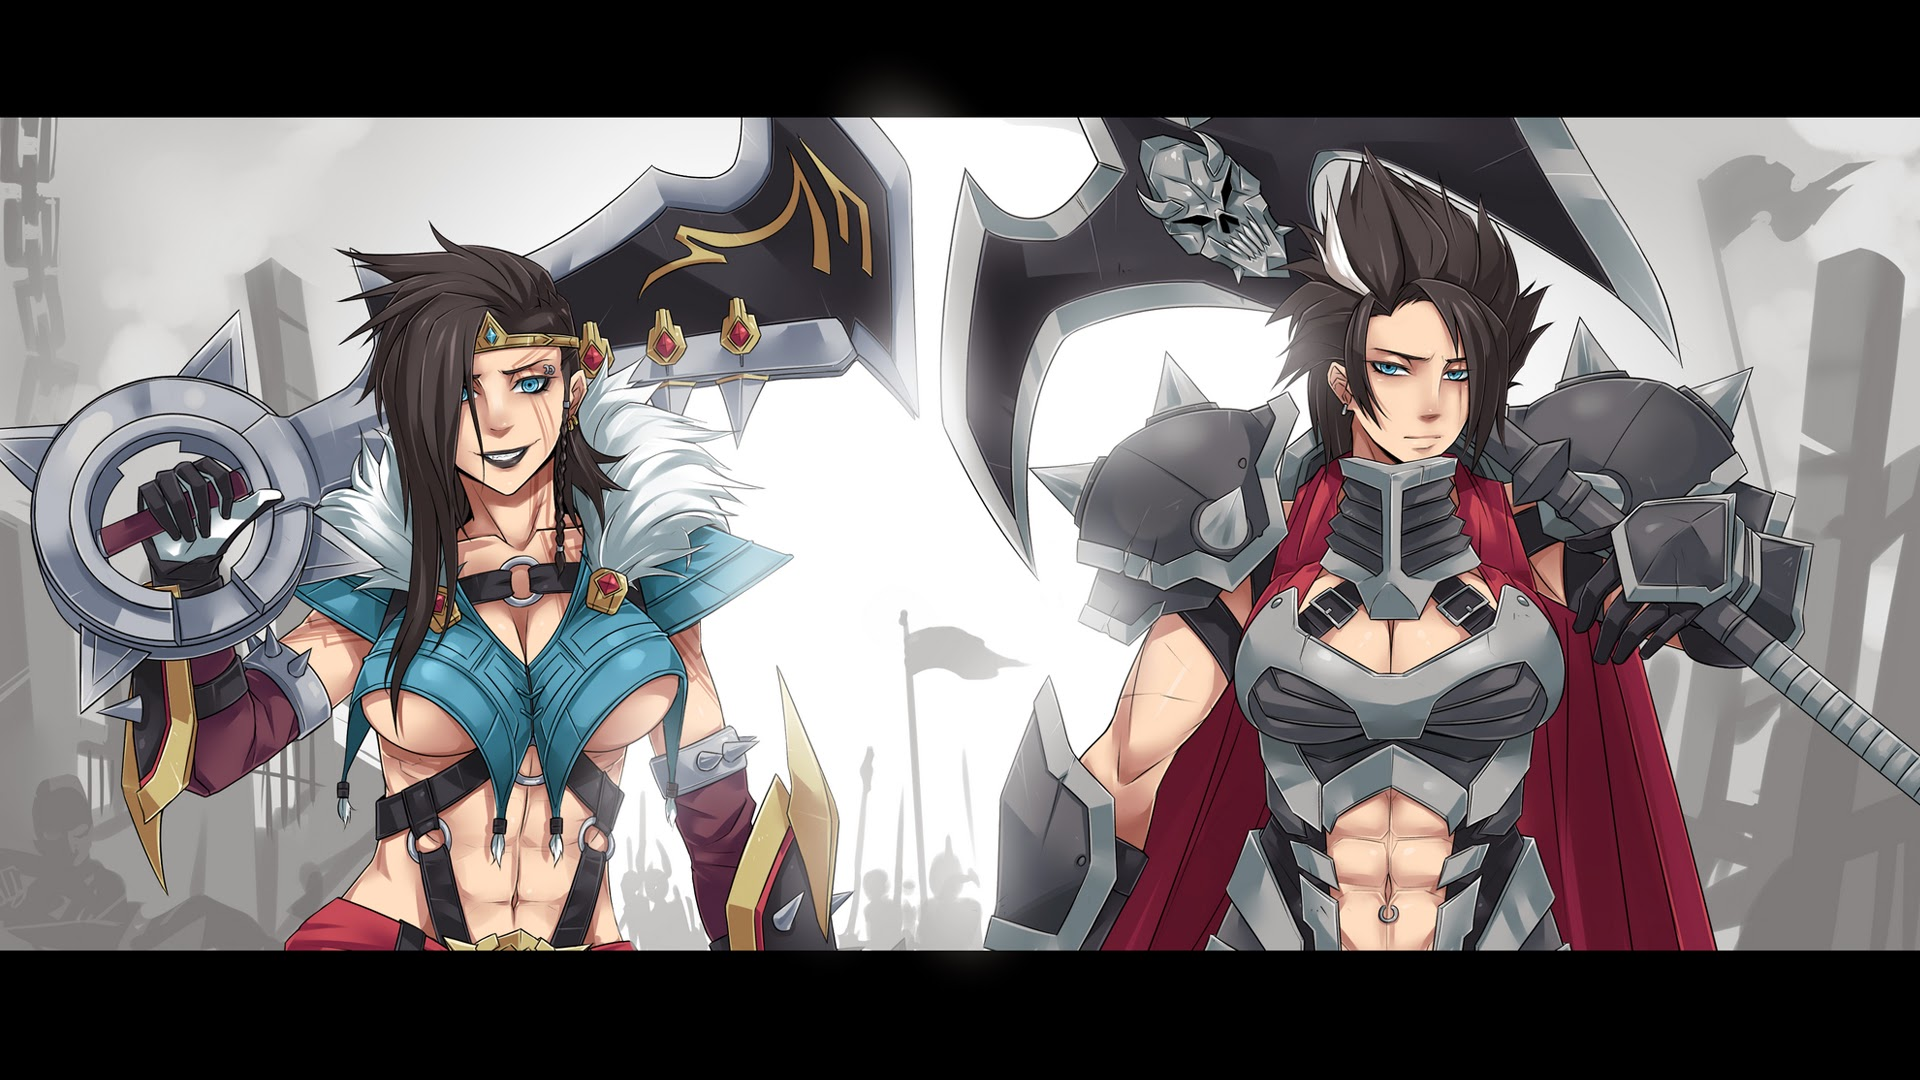 girl draven and darius league of legends hd wallpaper lol champion    League Of Legends Wallpaper Darius Draven